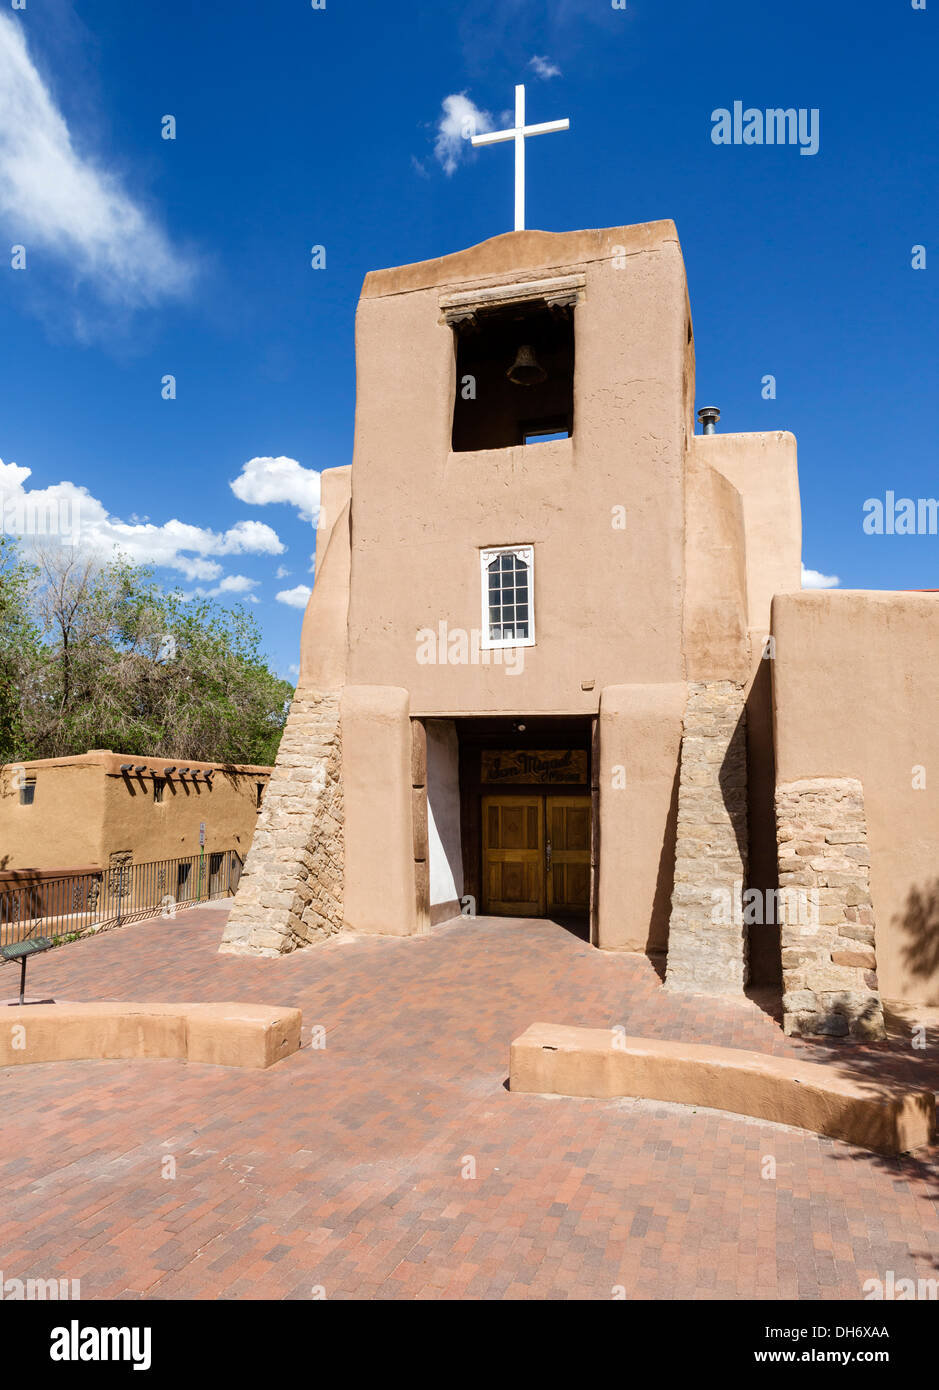 The 17thC San Miguel Mission, one of the oldest churches in the USA, Santa Fe, New Mexico - Stock Image